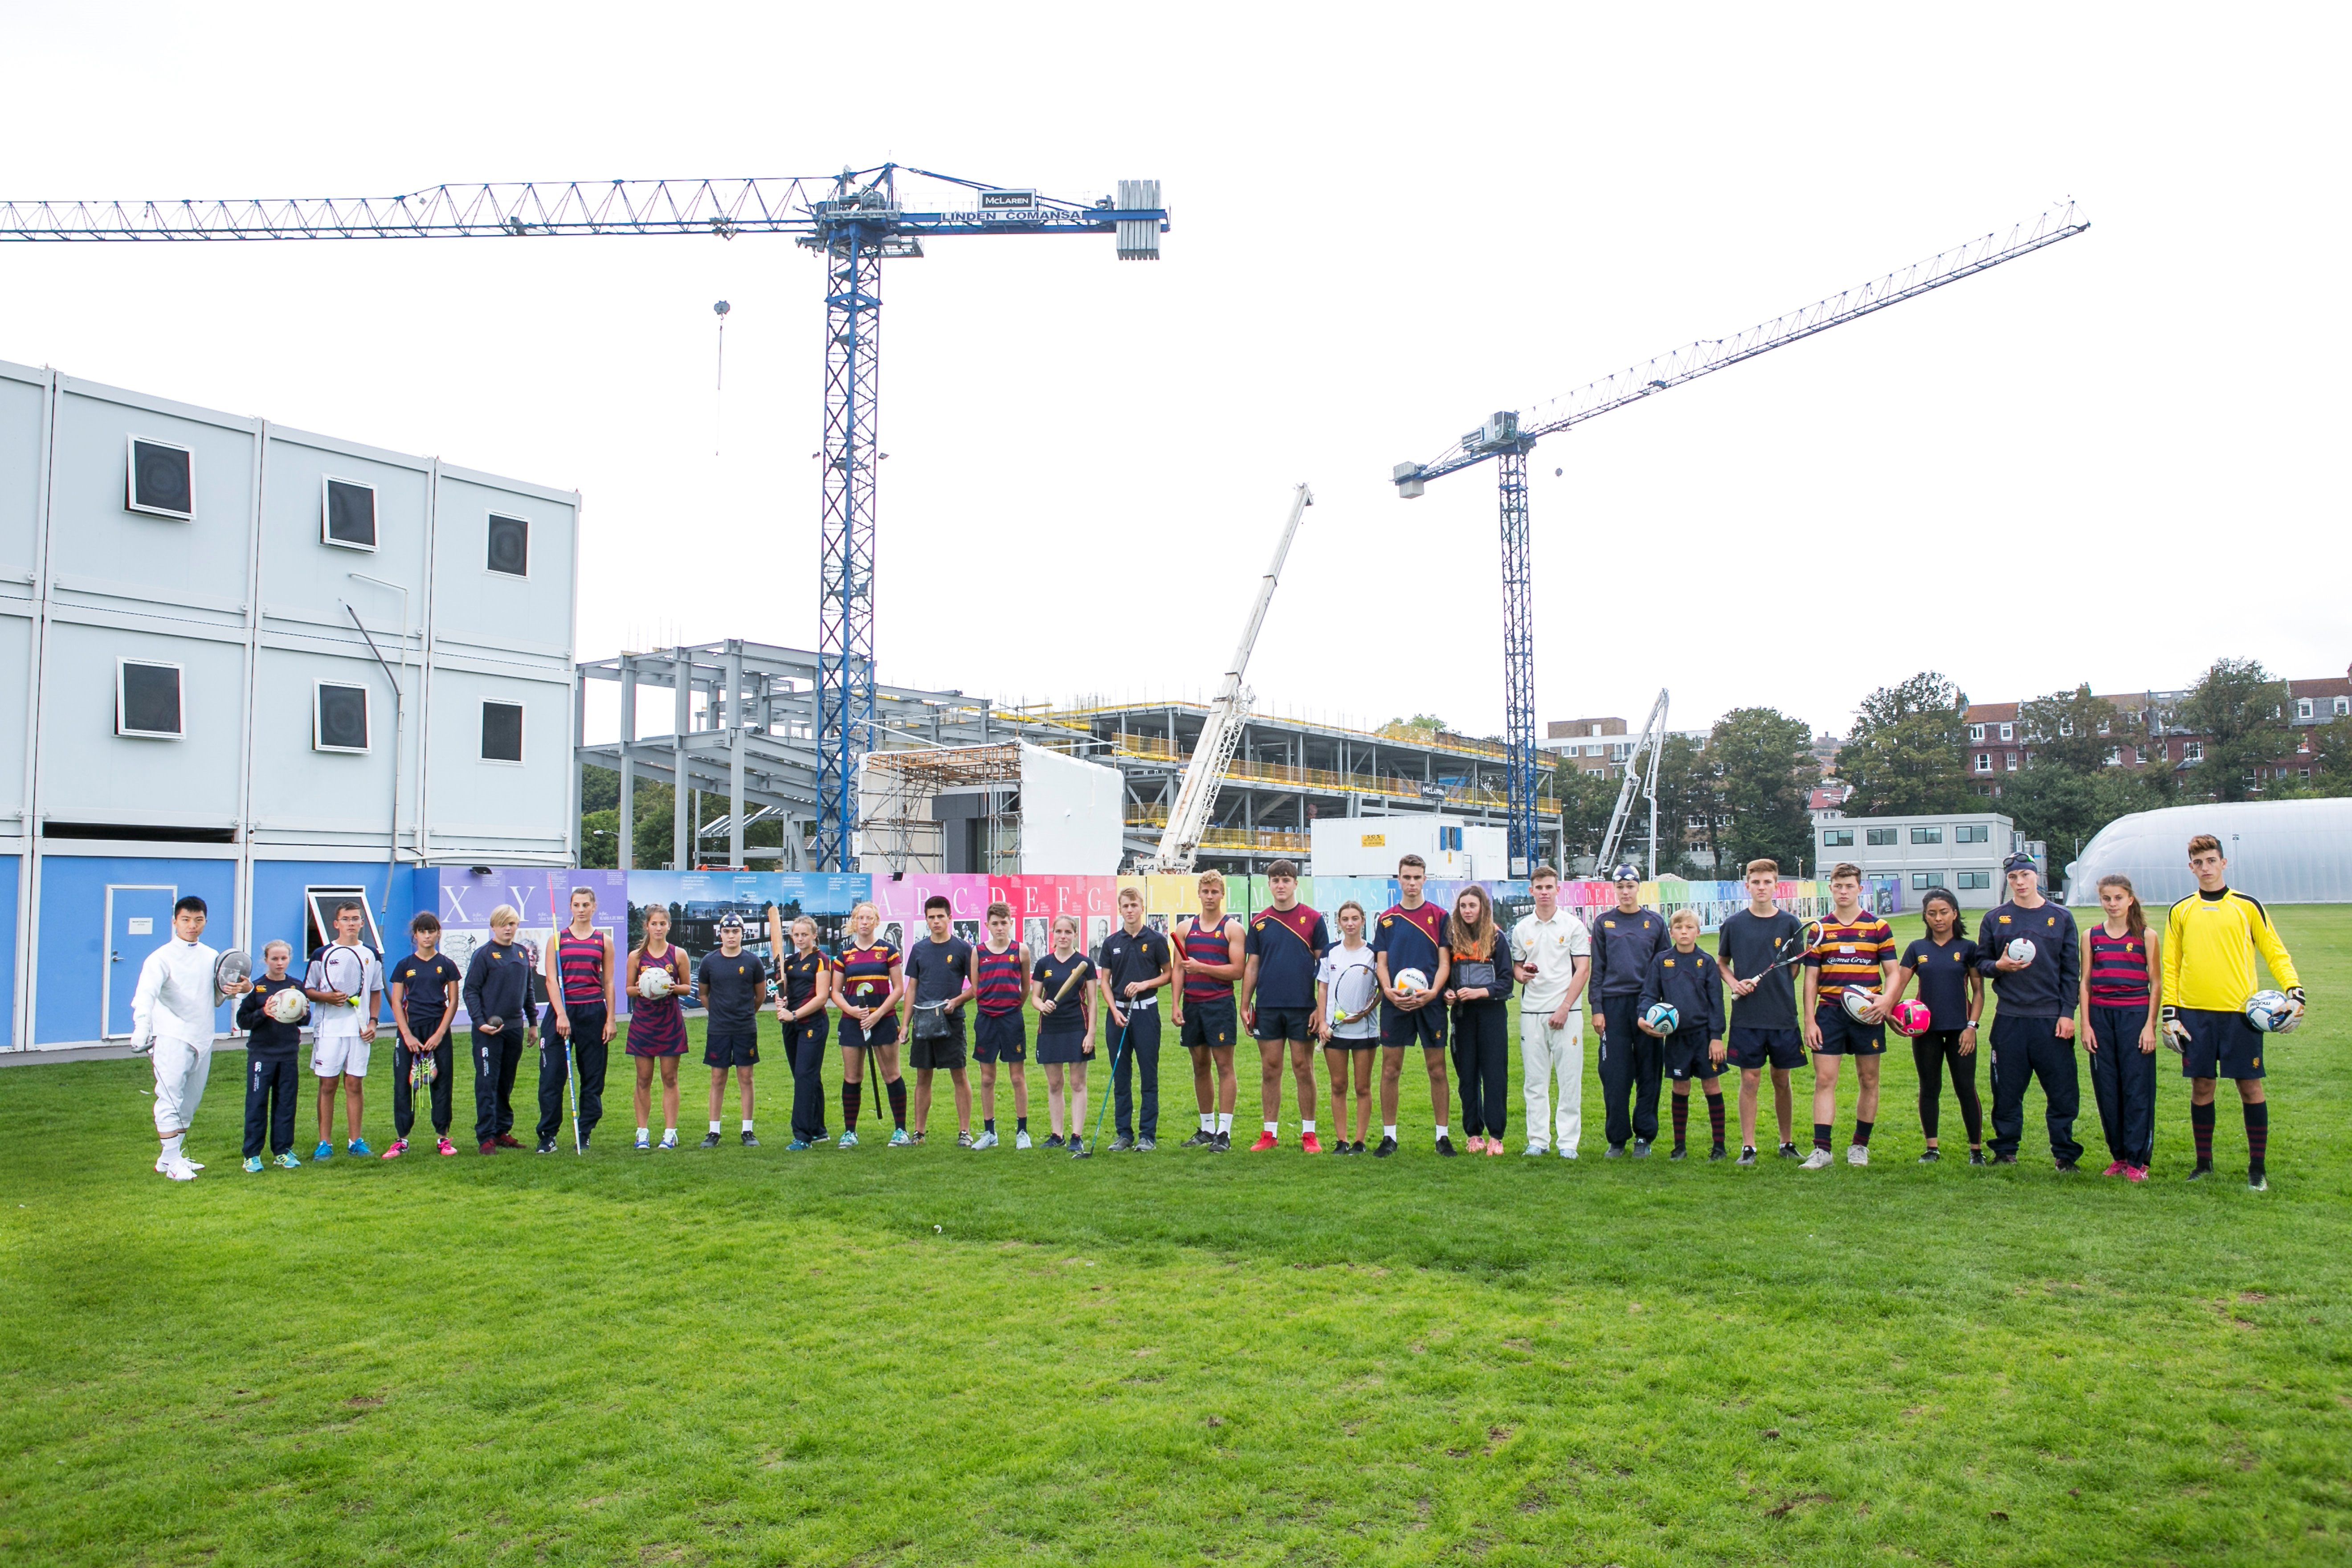 review photo shoot sports and science centre pupils building septemnber 2018 on home ground.JPG